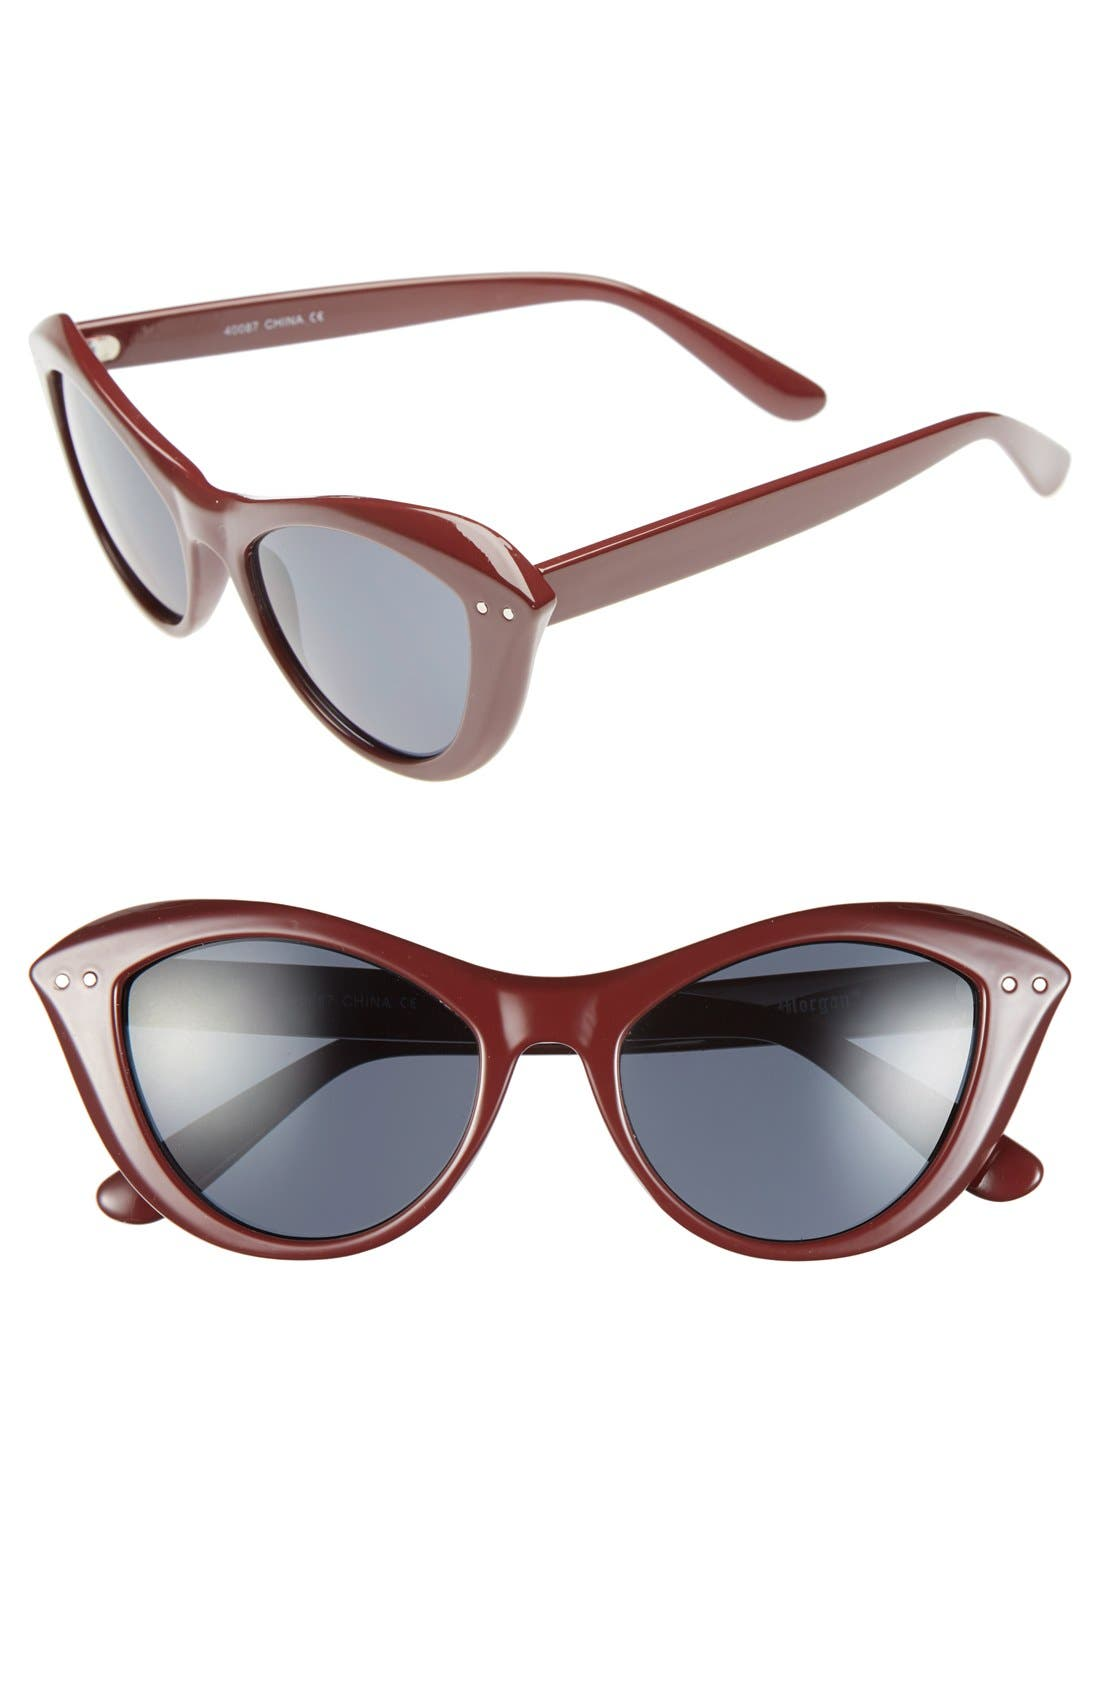 Main Image - A.J. Morgan 'Siren' 50mm Cat Eye Sunglasses